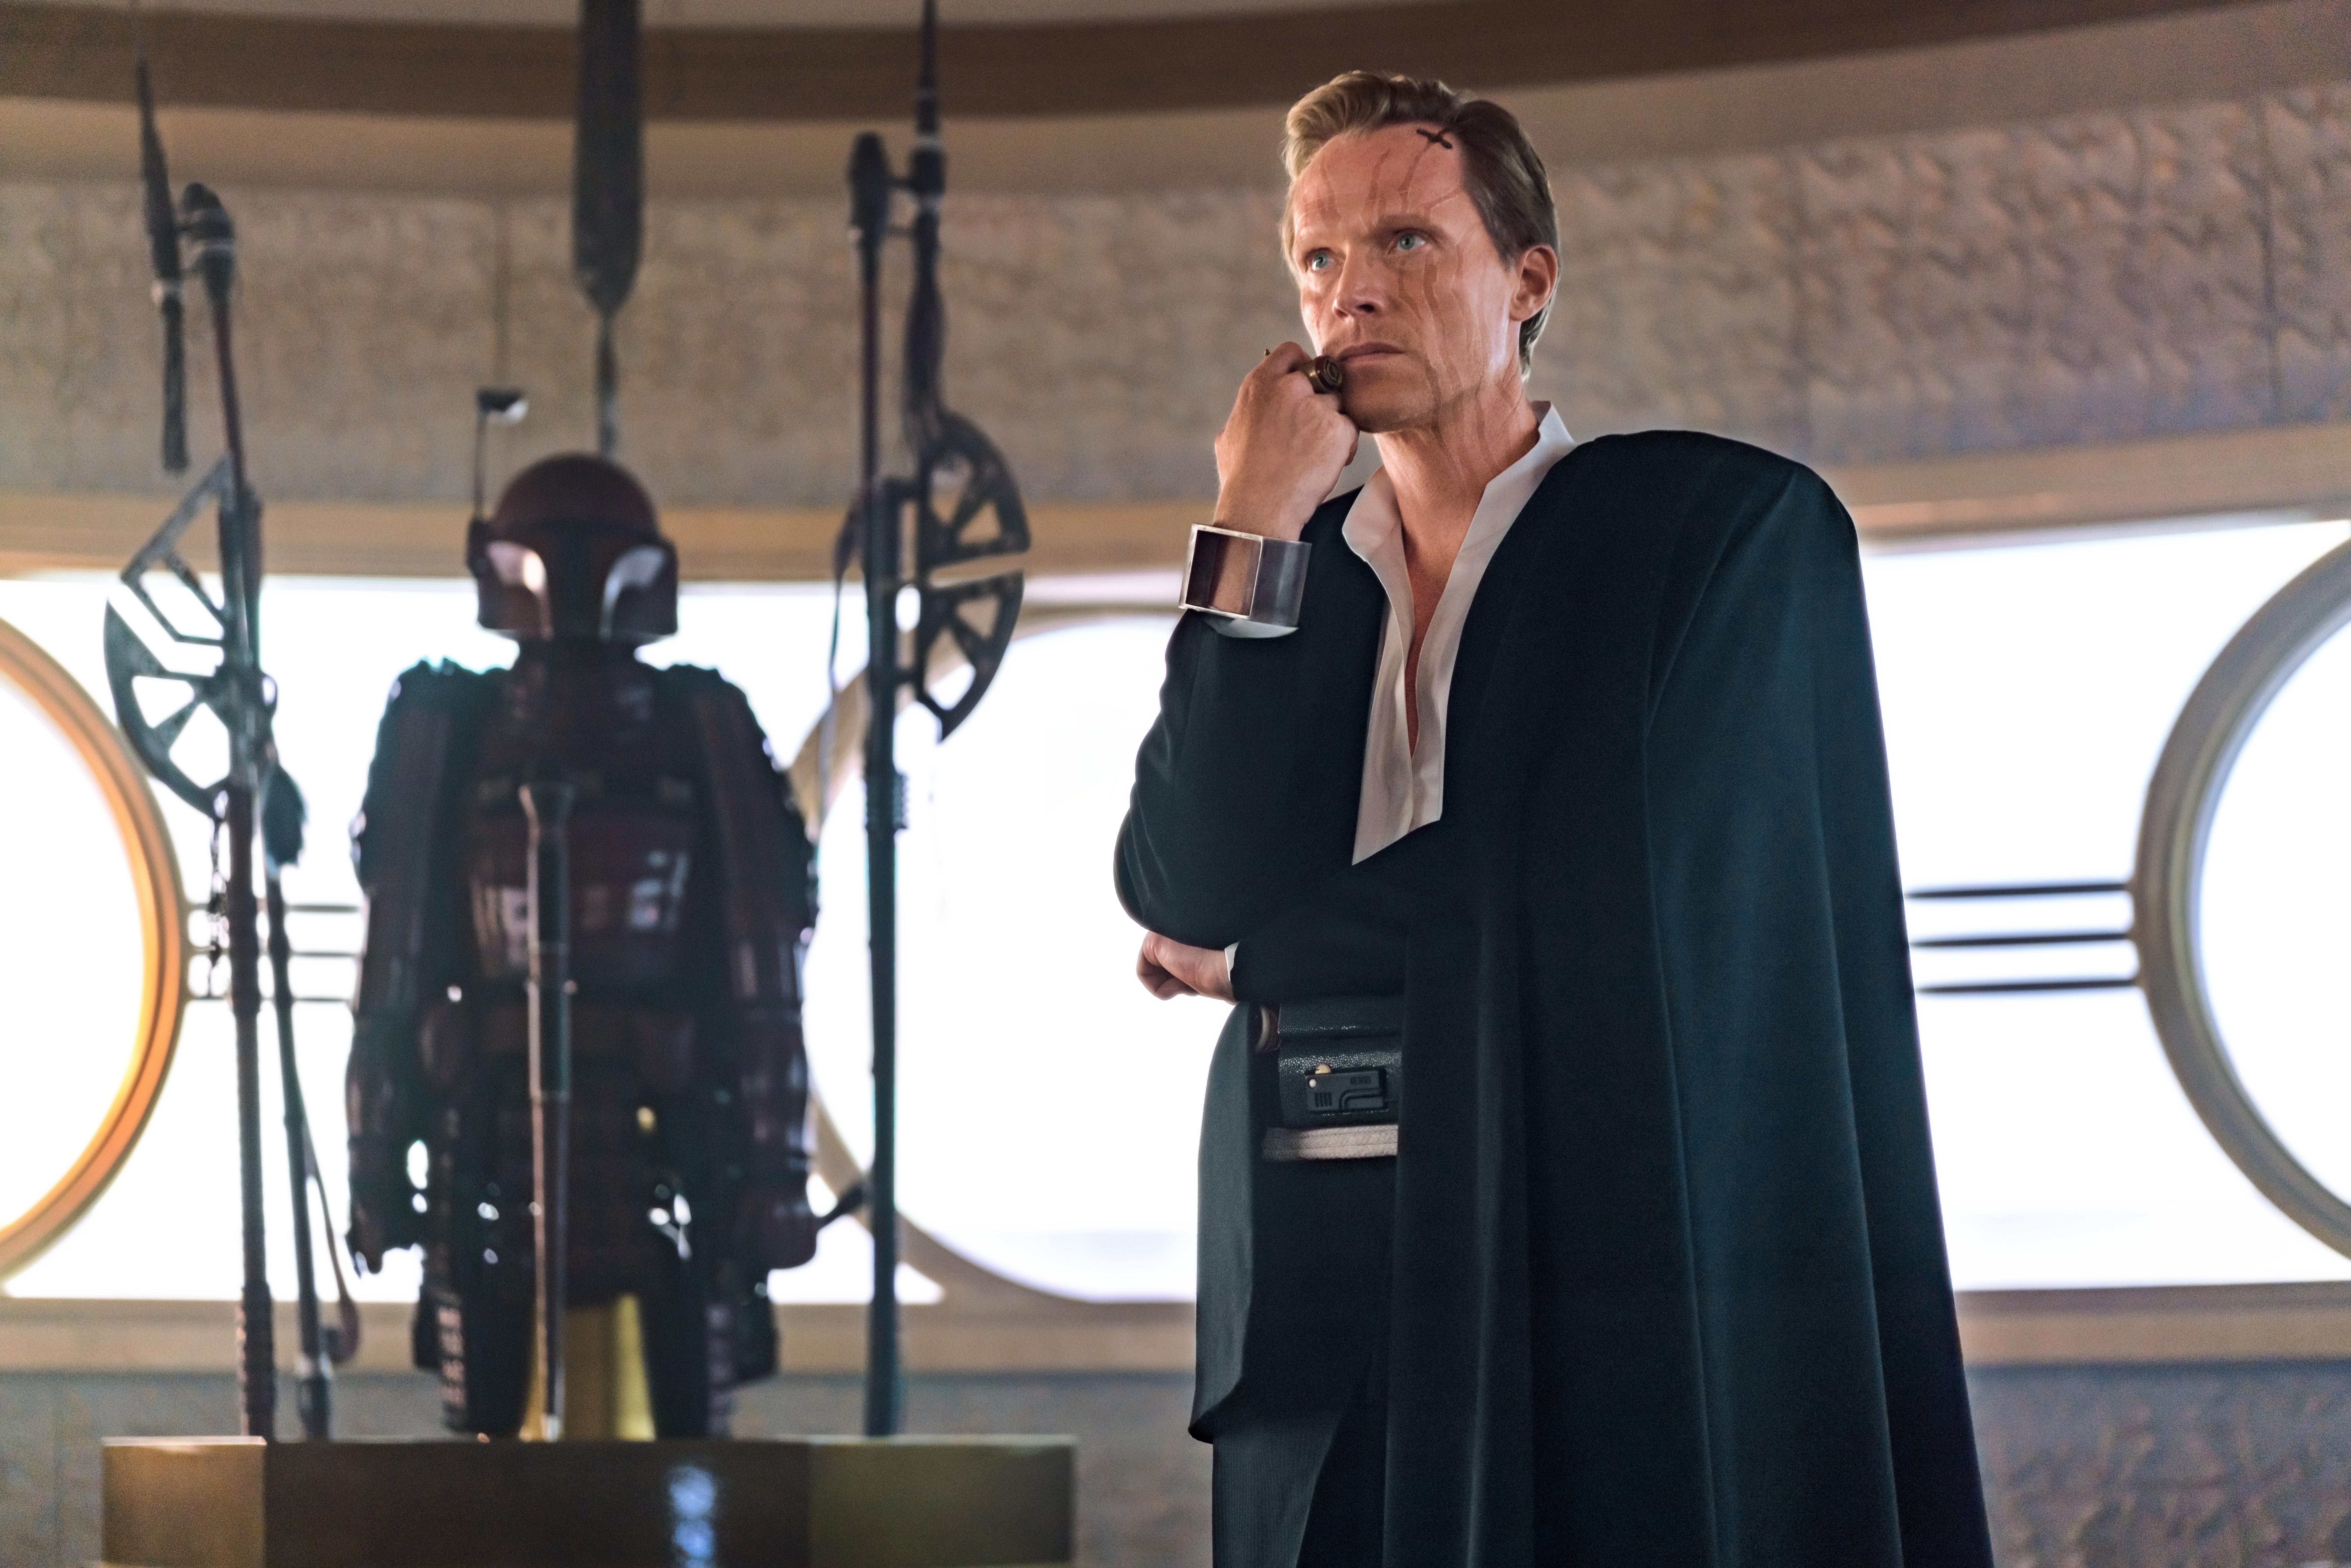 Exclusive Interview with Paul Bettany #HanSoloEvent #HanSolo